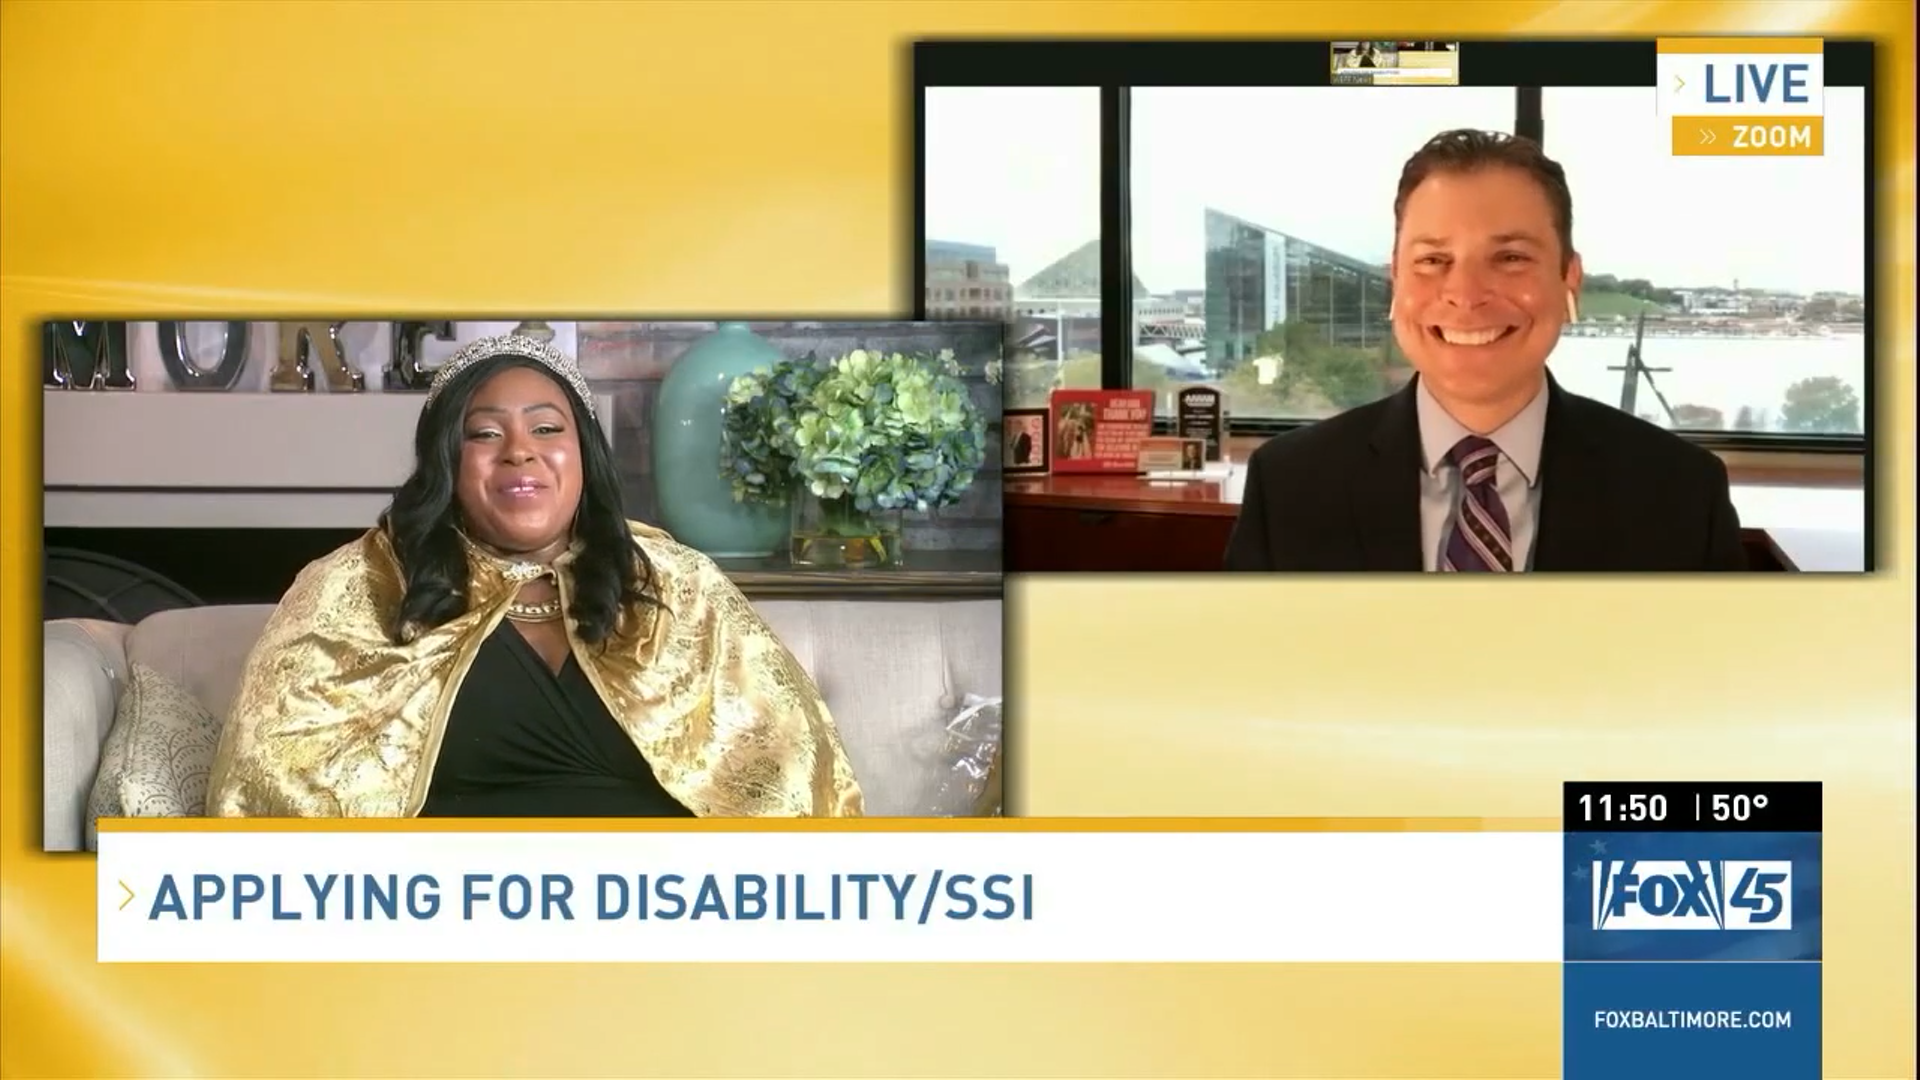 Scott Breaks Down the SSI/SSDI Application process Live with Lady T on Bmore Lifestyle